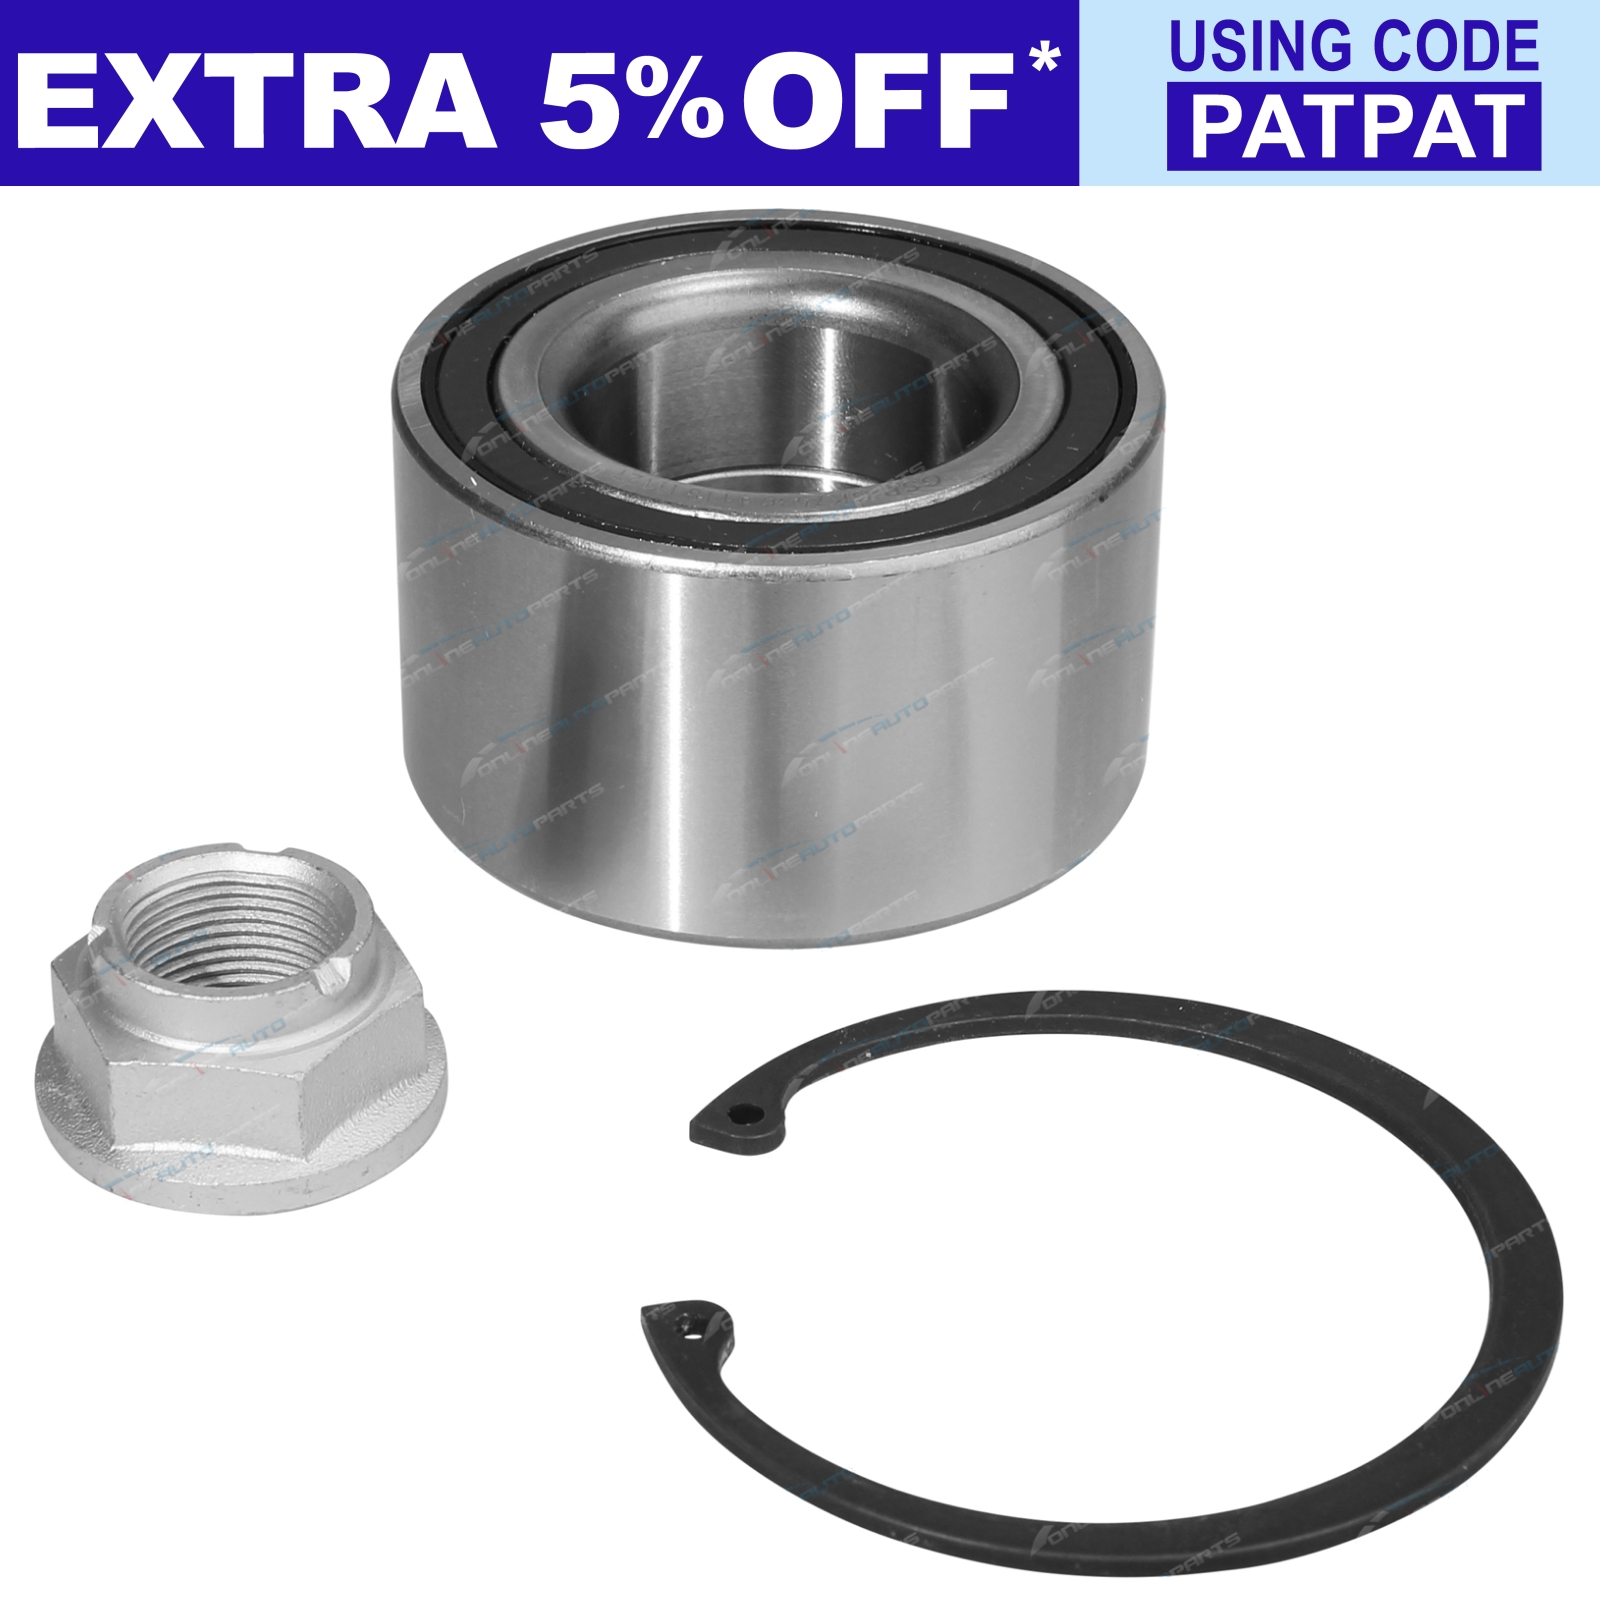 1-x-Front-Wheel-Bearing-Kit-suits-Mazda-3-BK-BL-FWD-Hatchback-Sedan-2005-2014